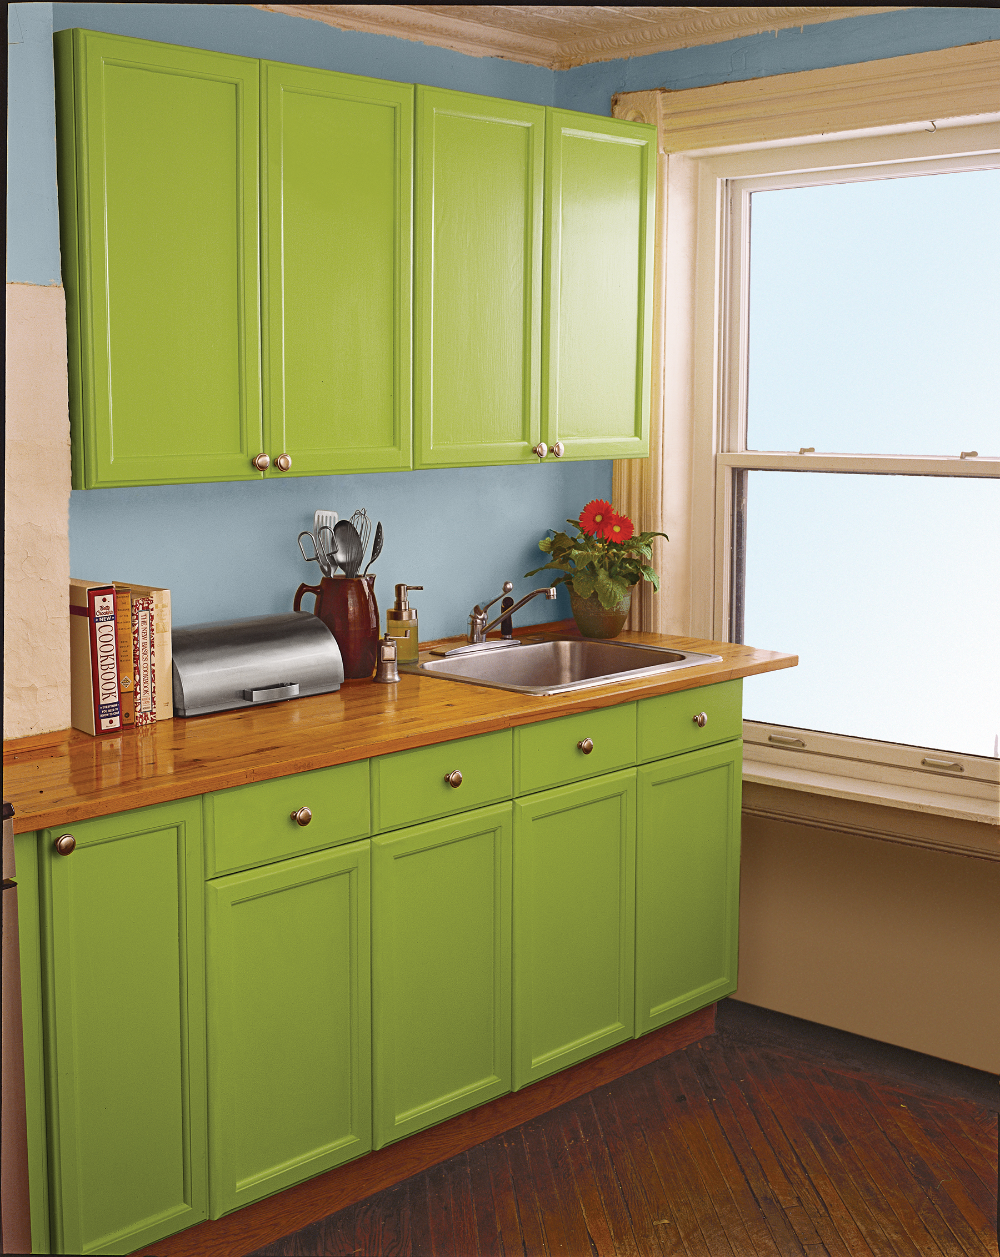 10 Ways to Spruce Up Tired Kitchen Cabinets - Update kitchen cabinets, Kitchen, Old kitchen cabinets, Kitchen cabinets, Kitchen paint, Cabinet - Hang kitchen cabinets to add storage, paint or reface old ones to refresh the look of your room, and more